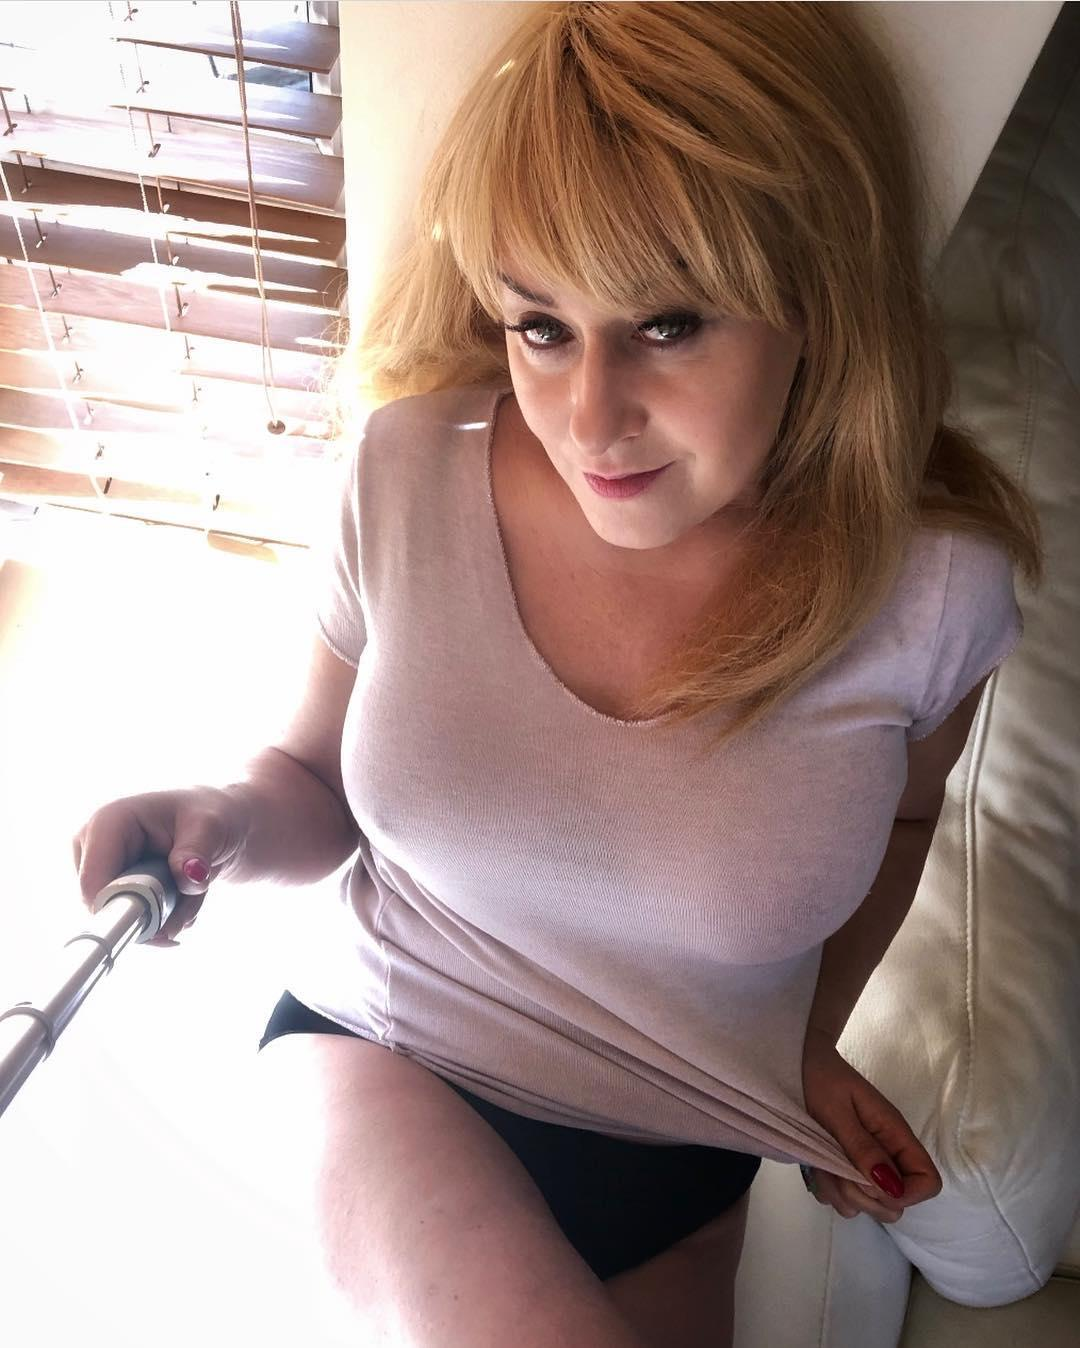 busty mature doing some downblouse selfies - would you like to drop it ? picture 3